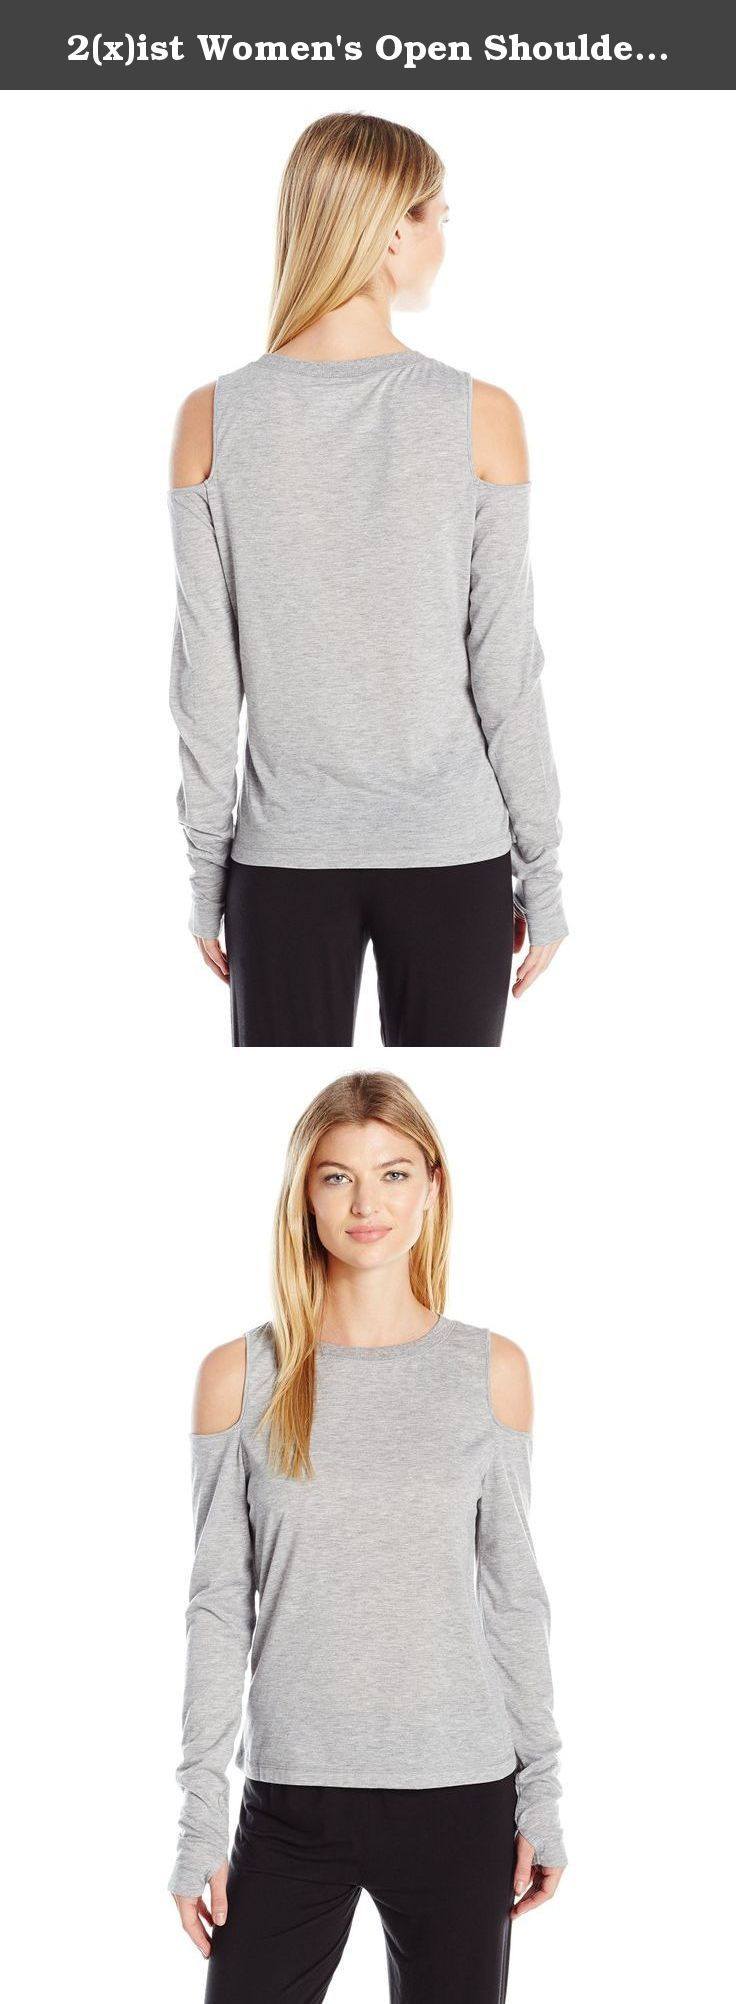 2(x)ist Women's Open Shoulder Tee, Grey, Small. Soft modal long sleeve with open shoulder detail and thumbholes.